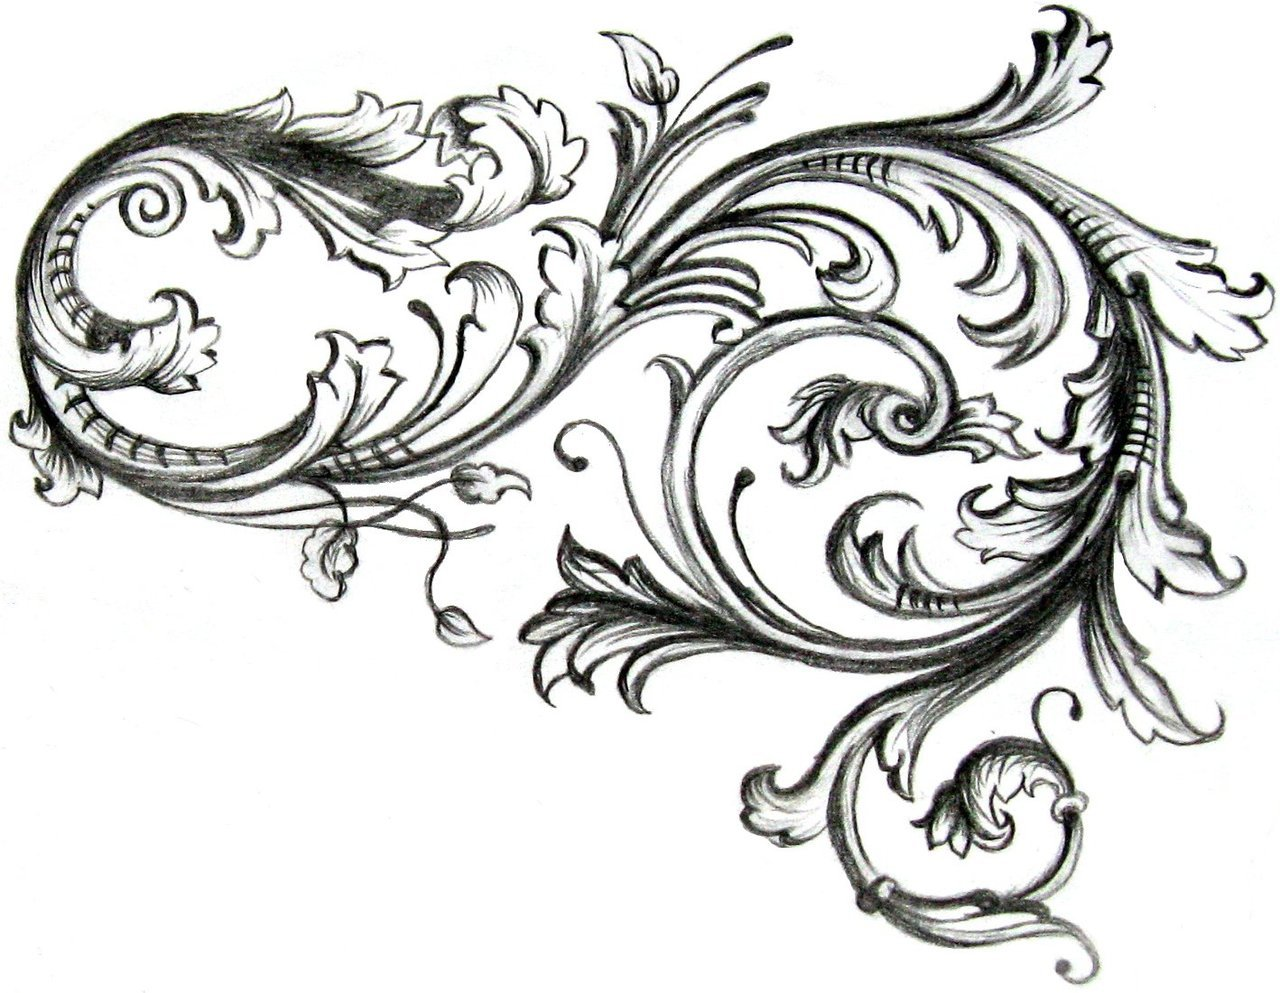 Tattoo Design Filigre Tattoo A Tattoo Filigree Tribal Tattoo